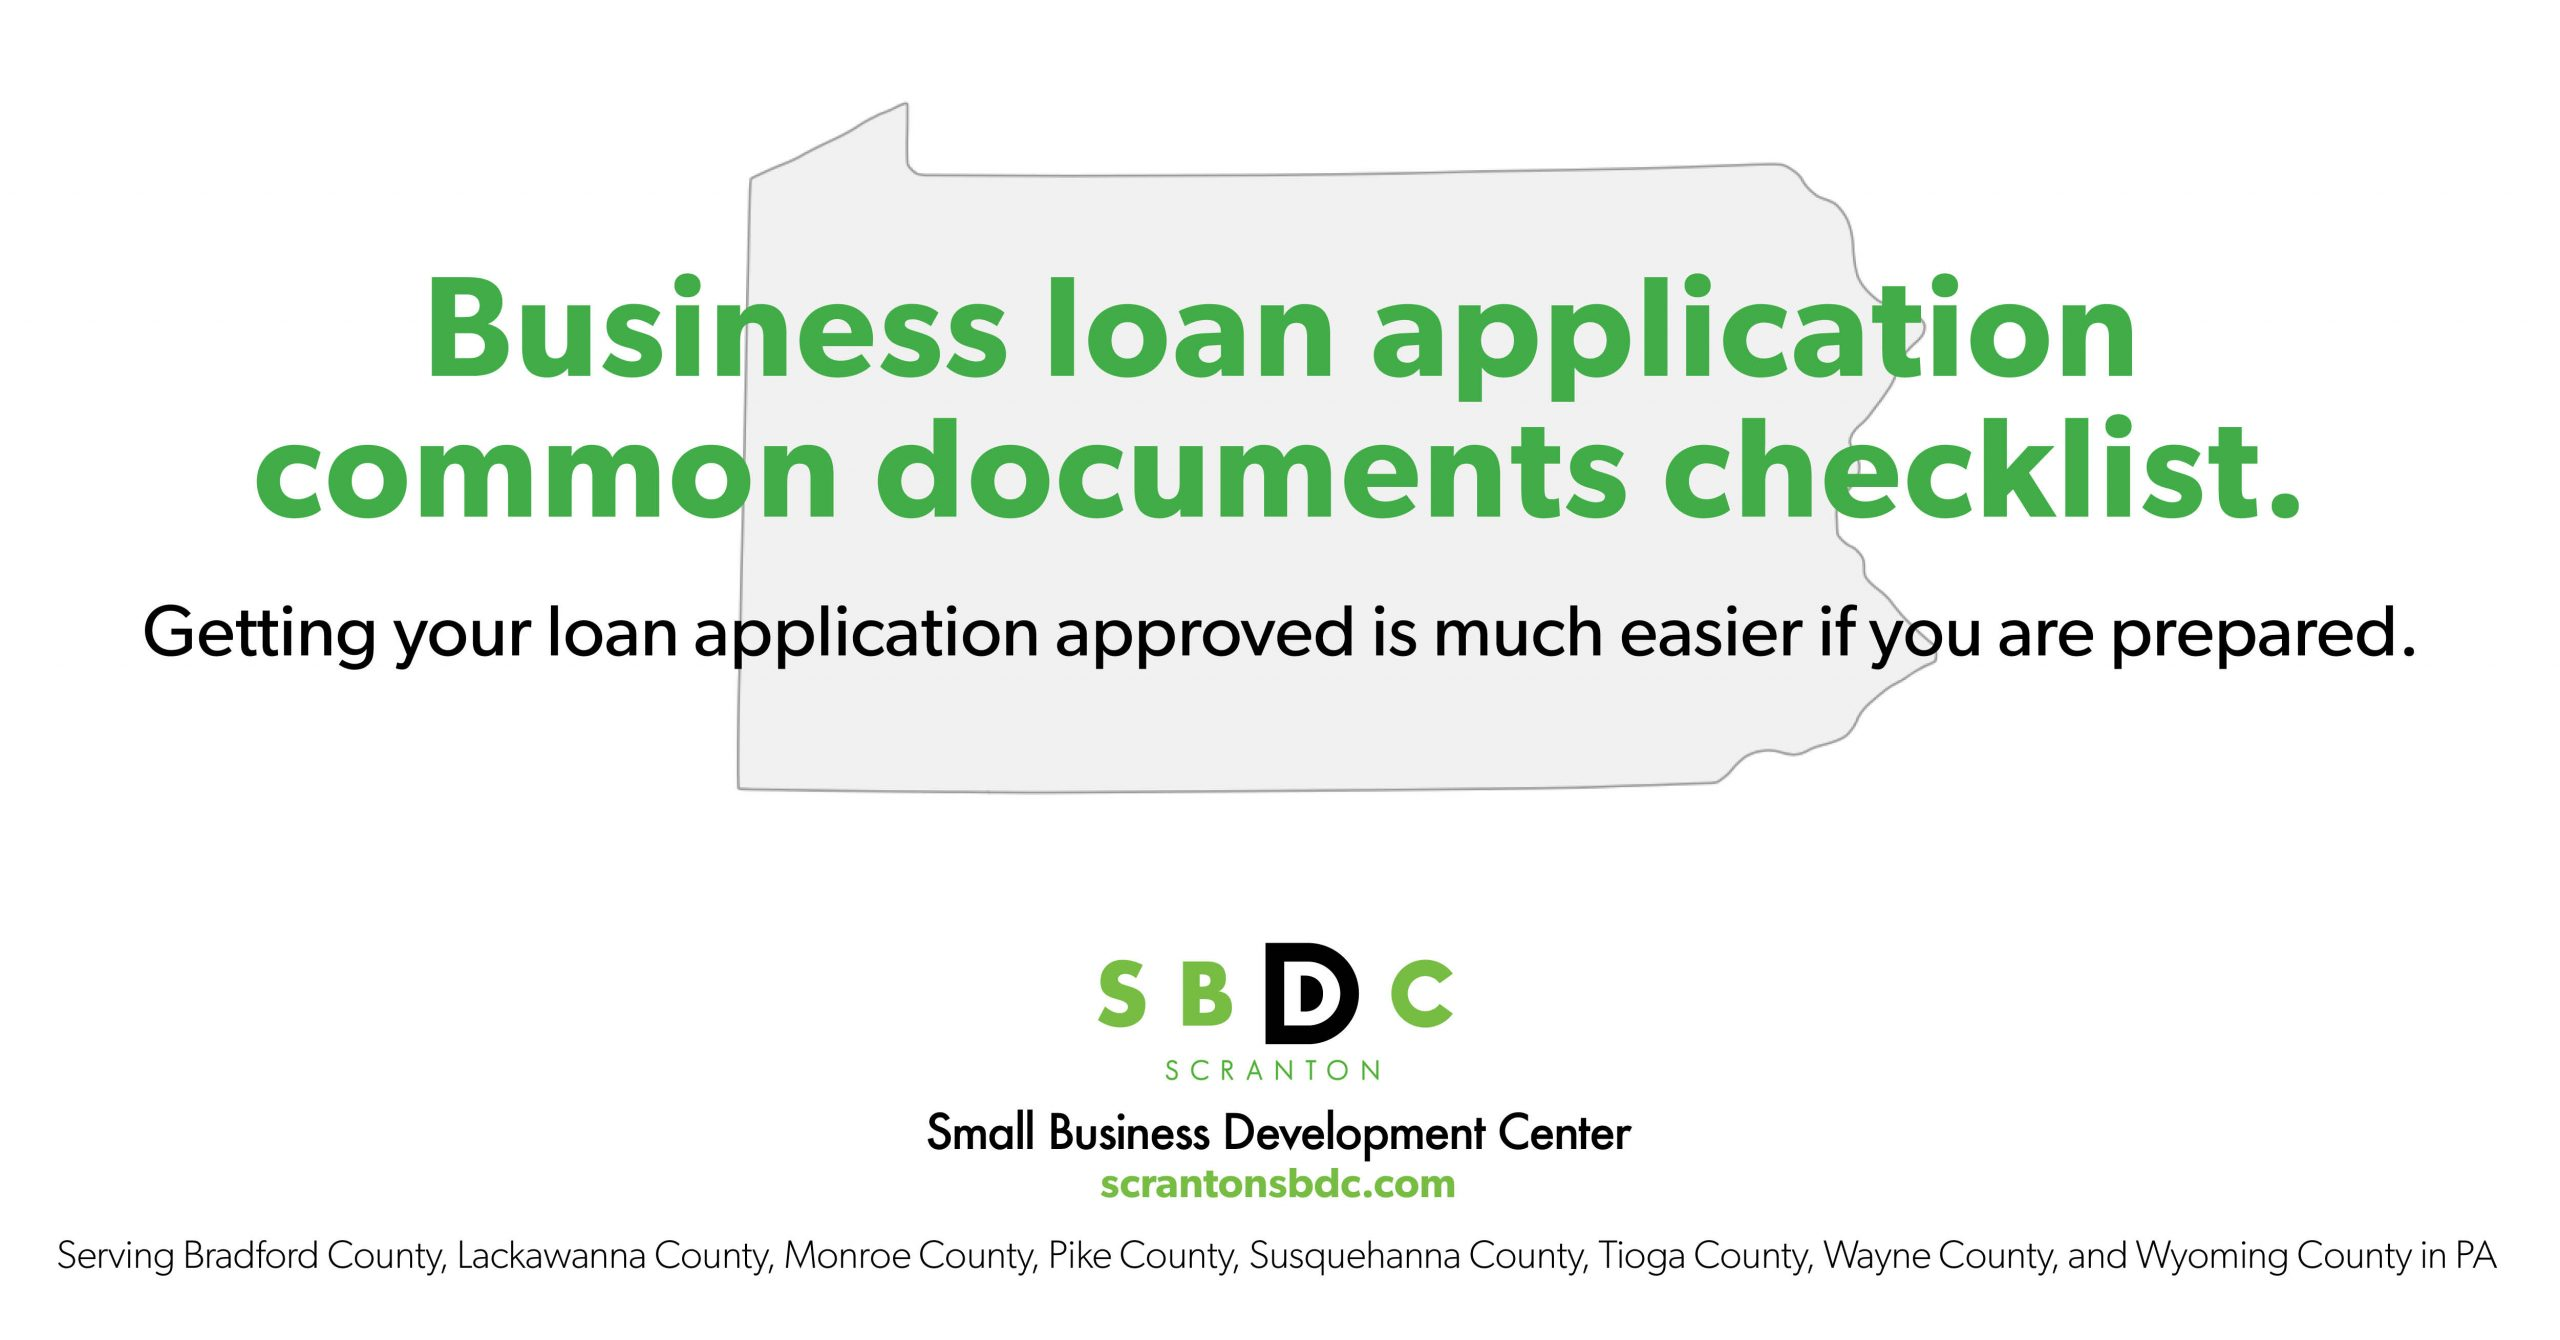 Business Loan Application Common Document Checklist